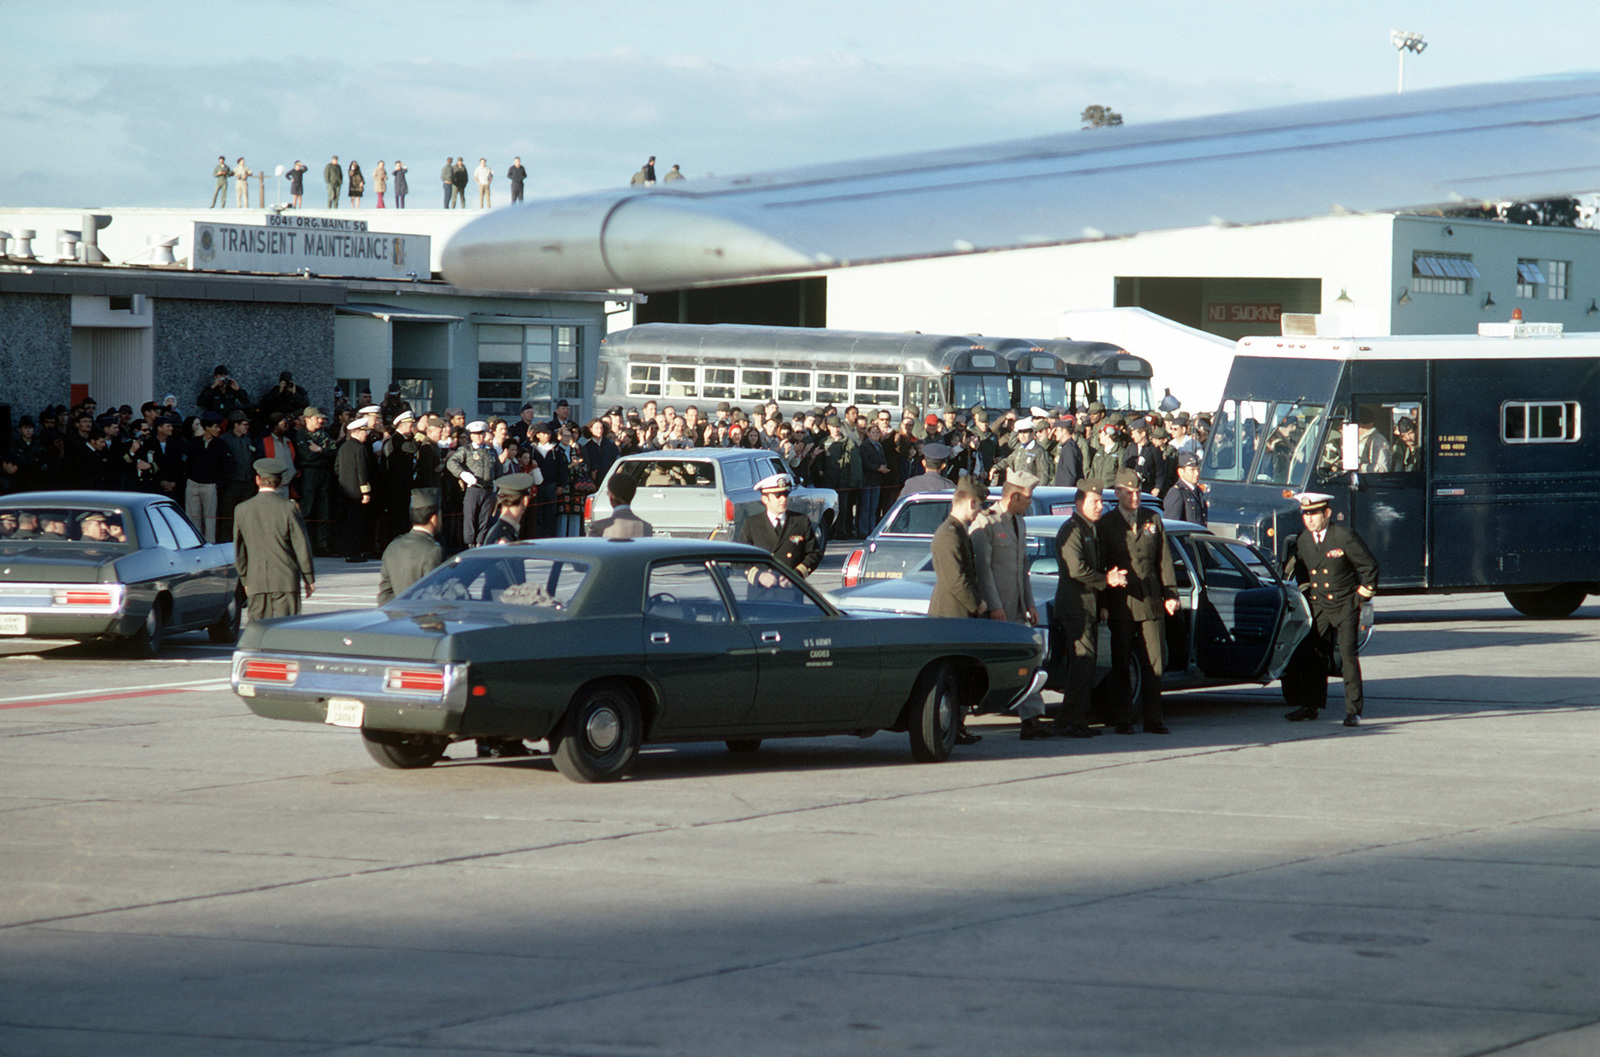 A view of the crowd gathered to welcome recently released prisoner of war home from Vietnam